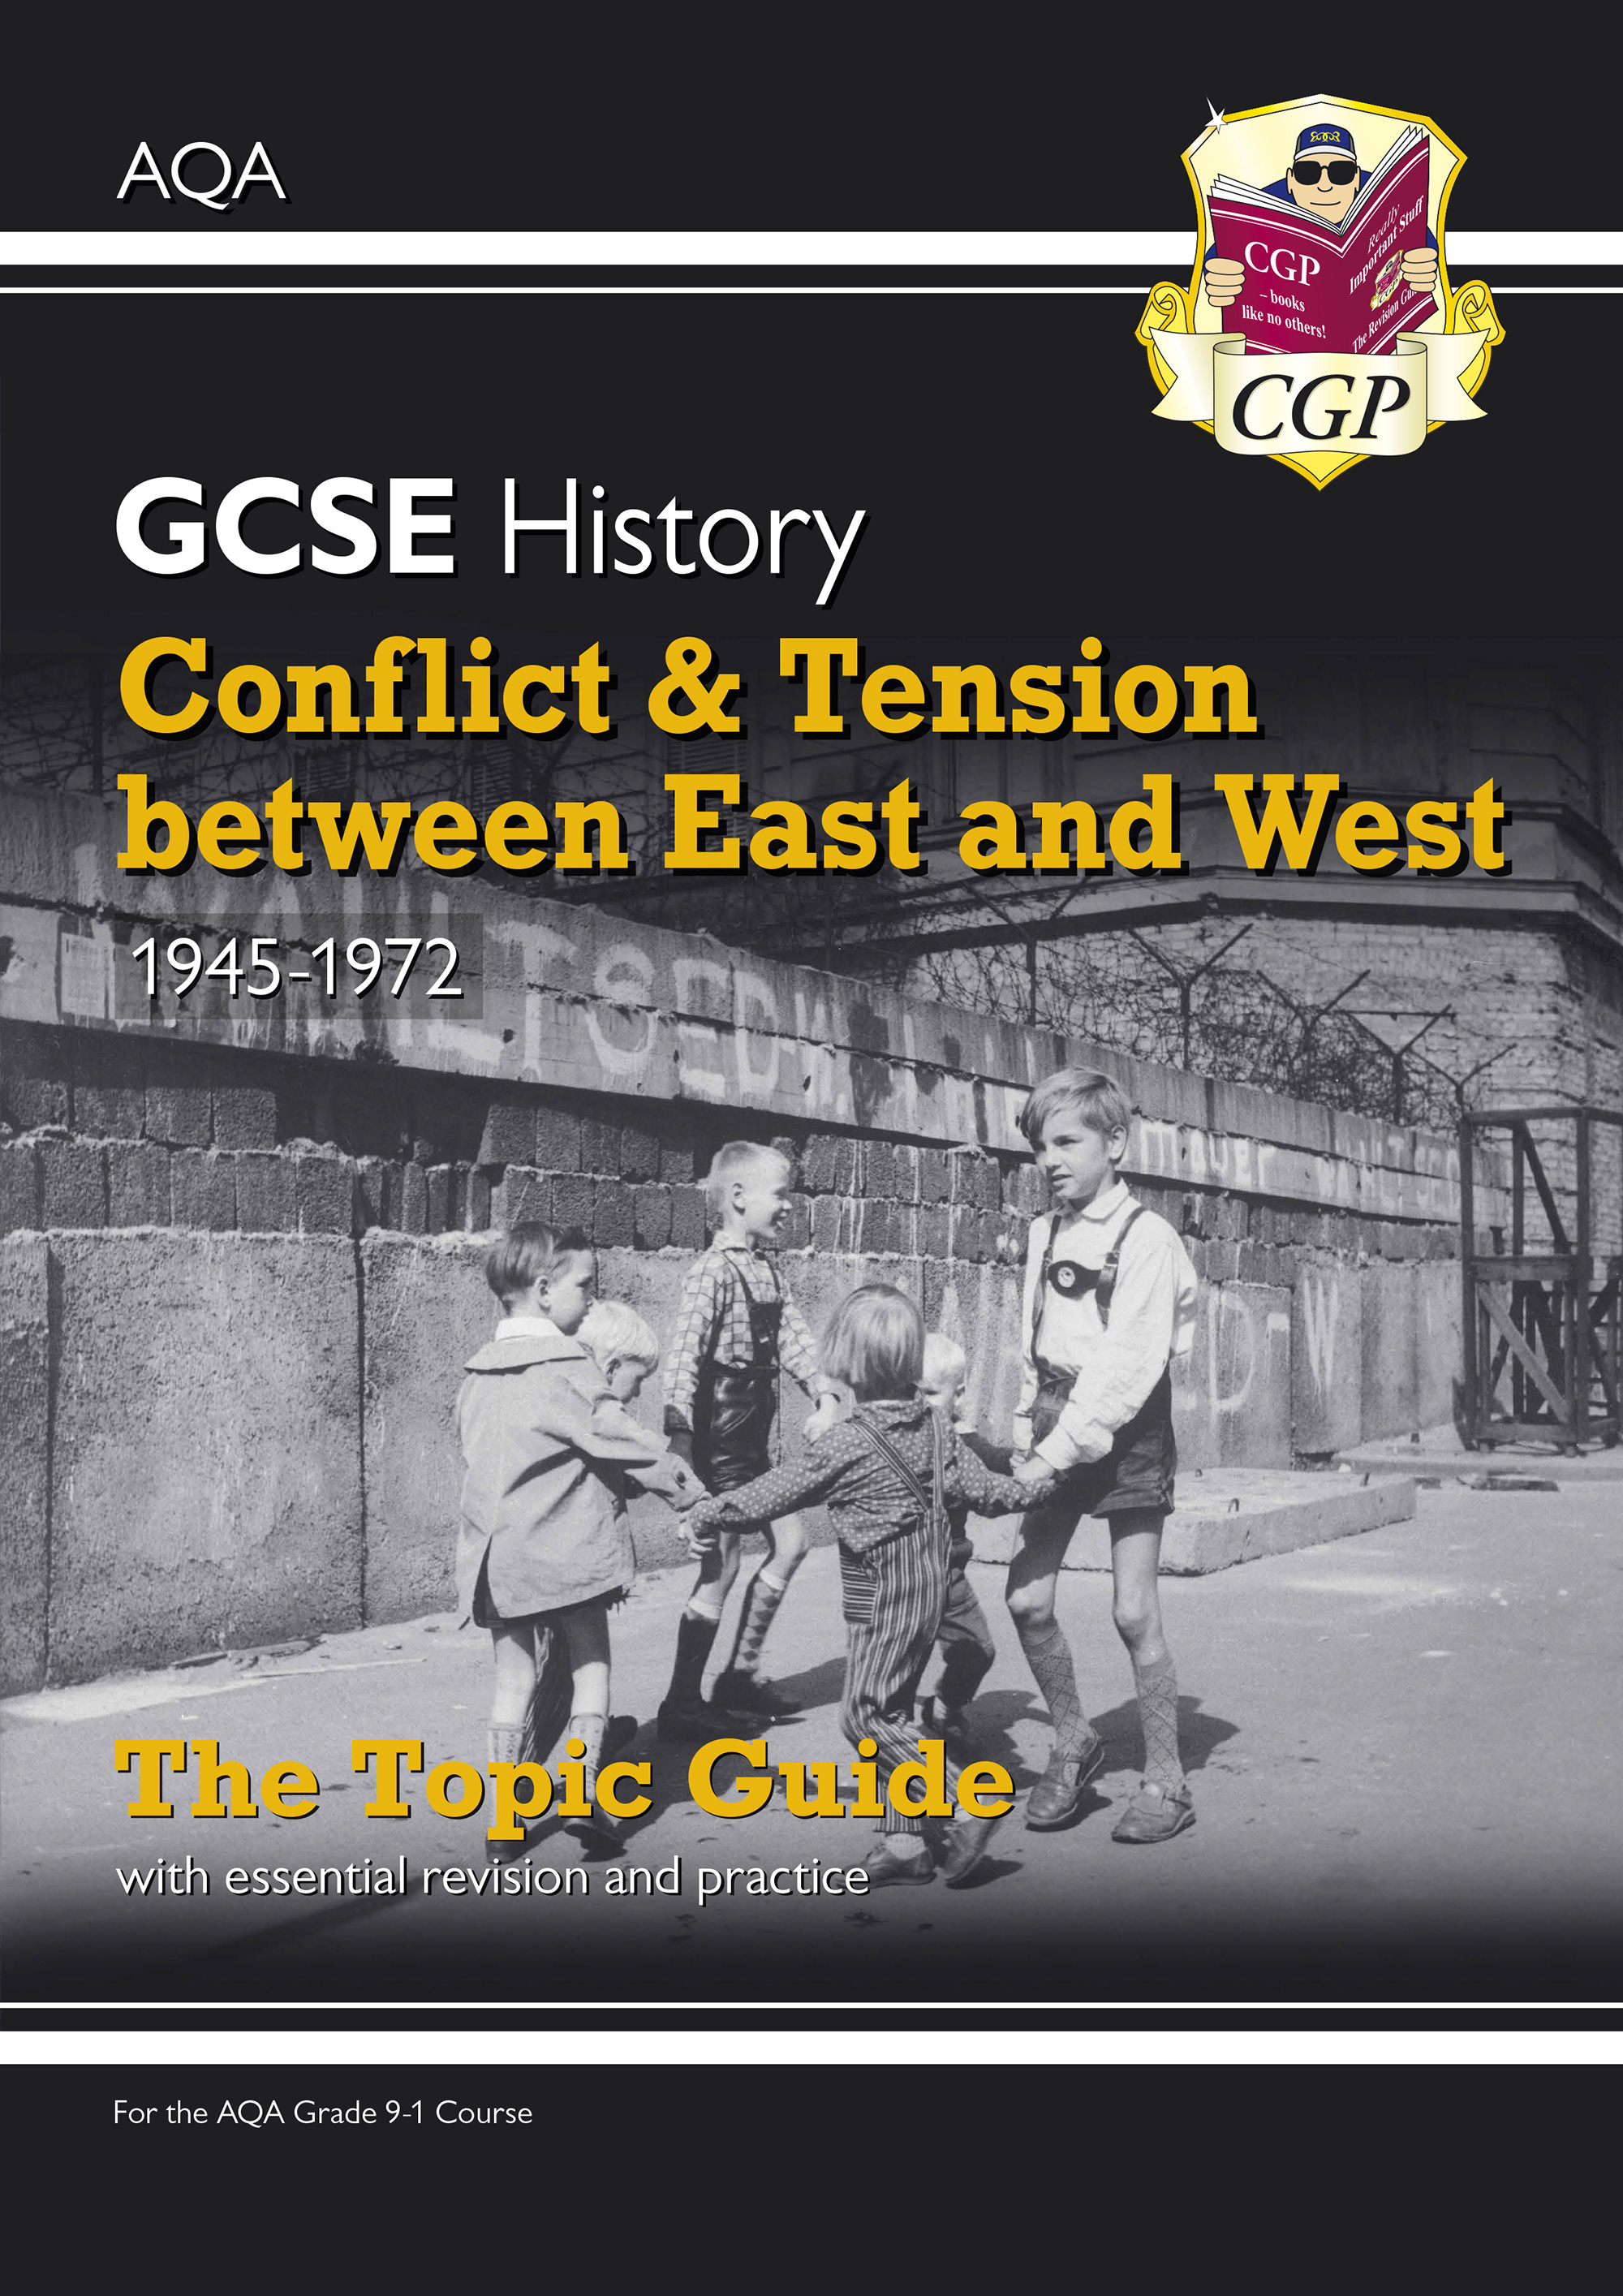 HAEWO41D - New Grade 9-1 GCSE History AQA Topic Guide - Conflict and Tension Between East and West,